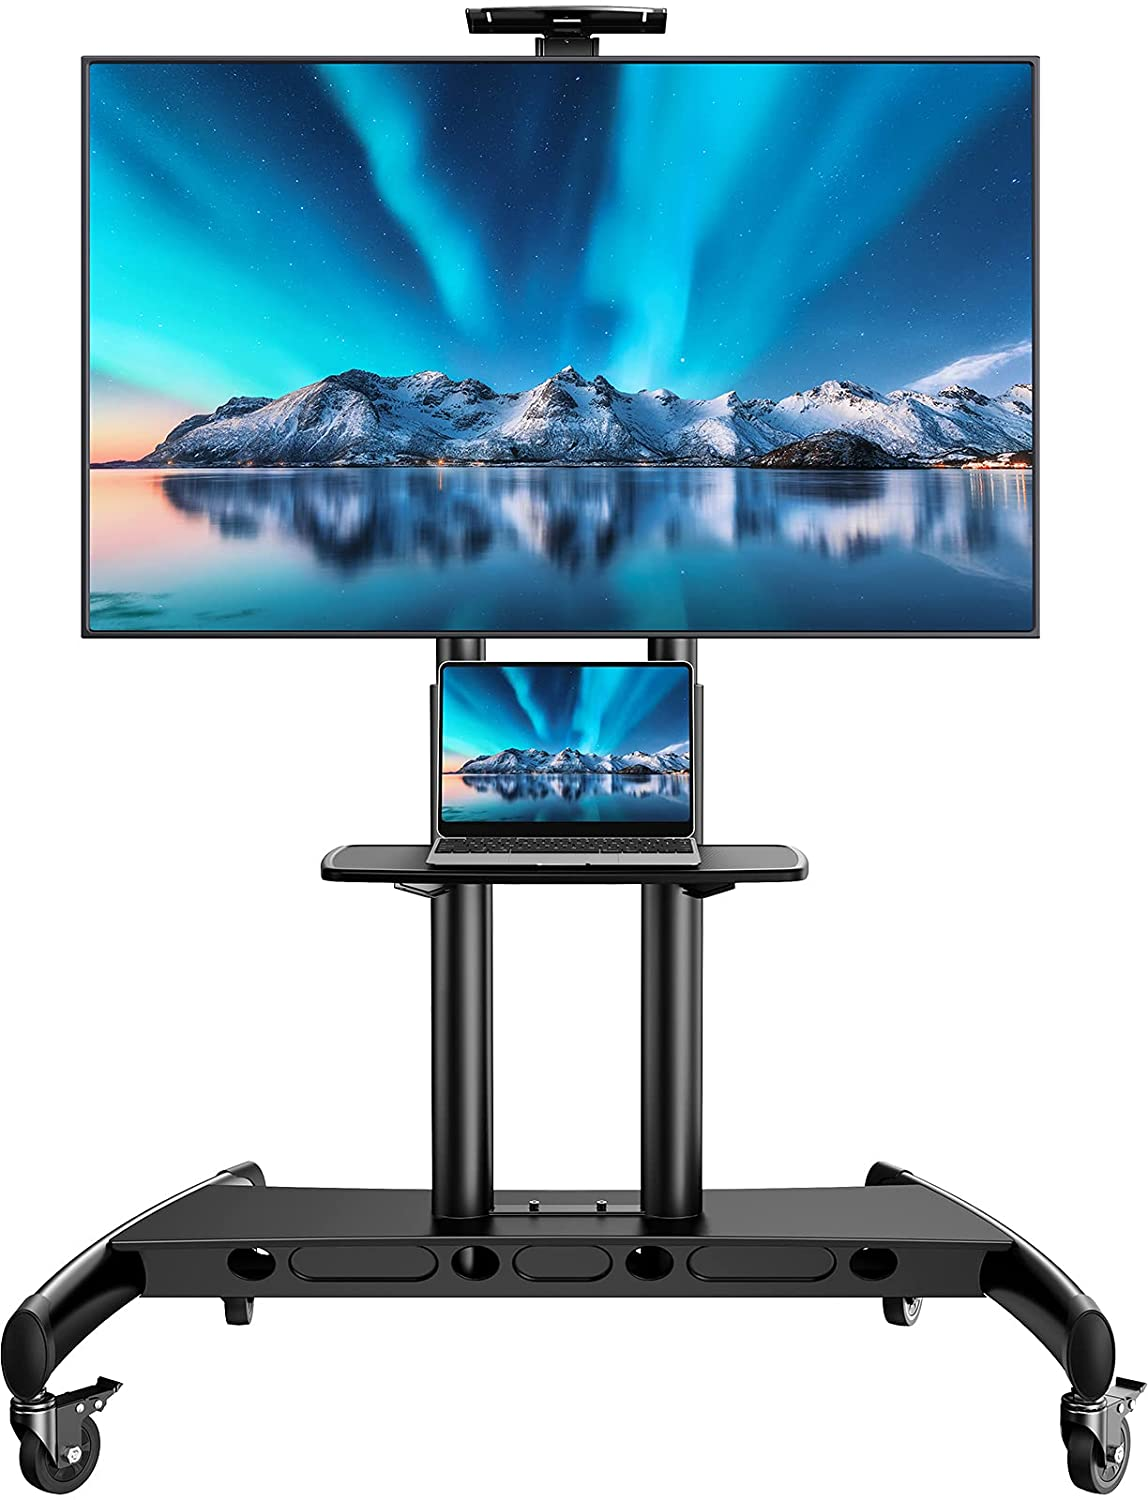 PERLESMITH Mobile TV Stand for 55-80 Inch Flat/Curved Screen TV Max VESA 800x500mm Outdoor TV Cart with Height Adjustable AV Shelf Rolling Floor TV Stand w/Camera Tray Holds up to 200Lbs (PSTVMC07)